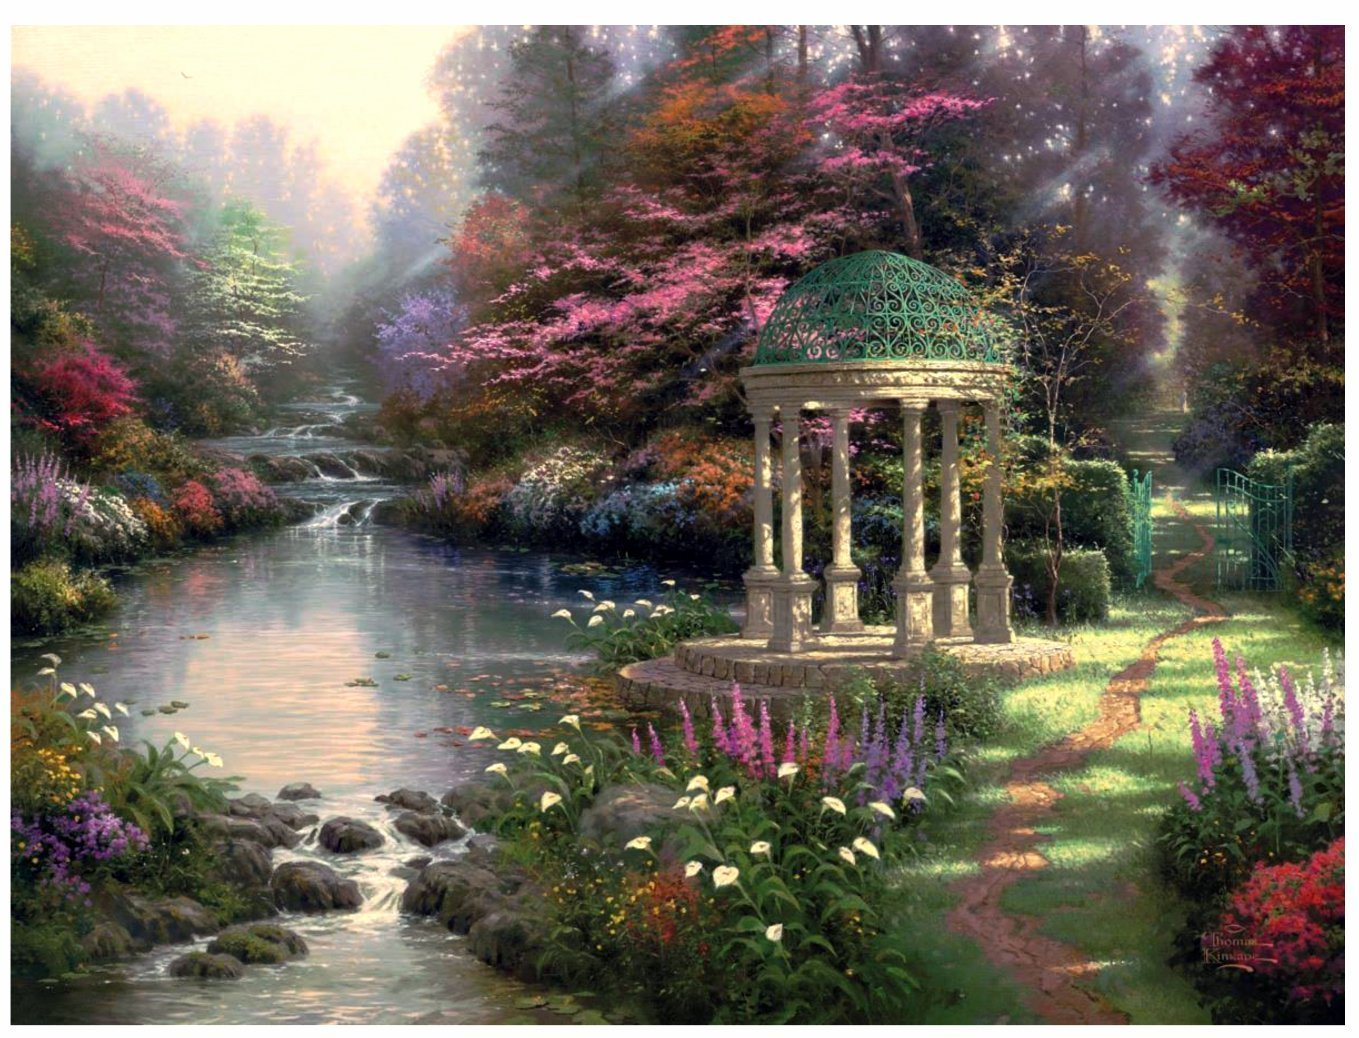 Garden of Prayer by Thomas Kinkade